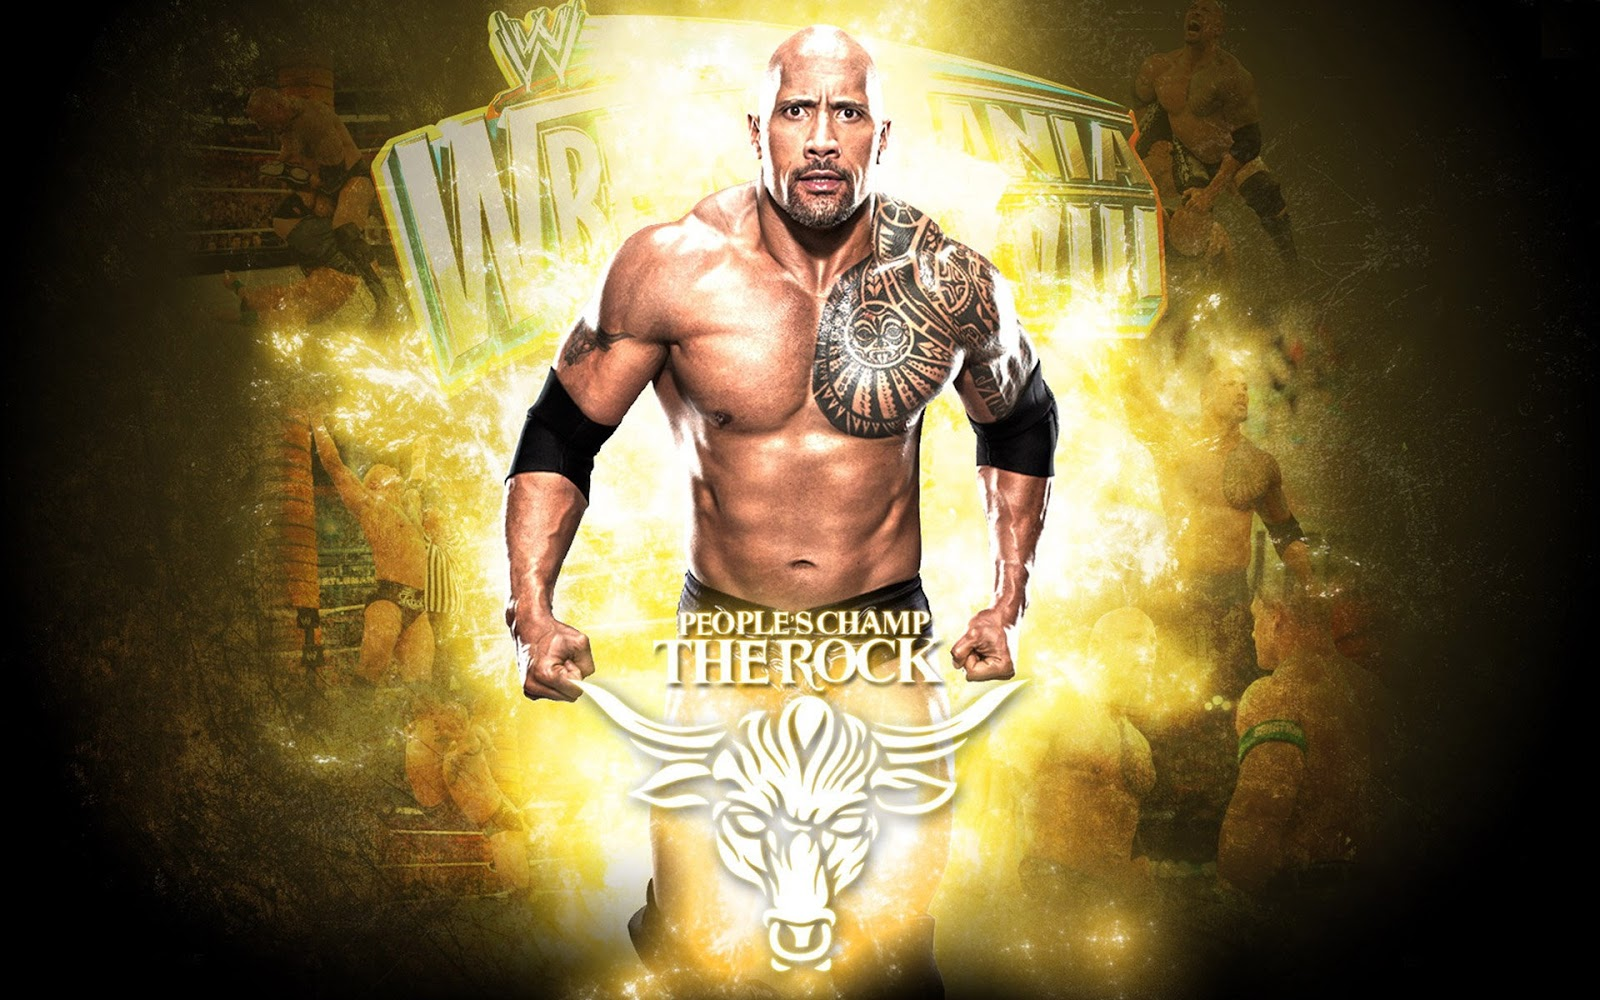 WWE The Rock Dwayne Johnson HD Wallpapers For Desktop 1600x1000